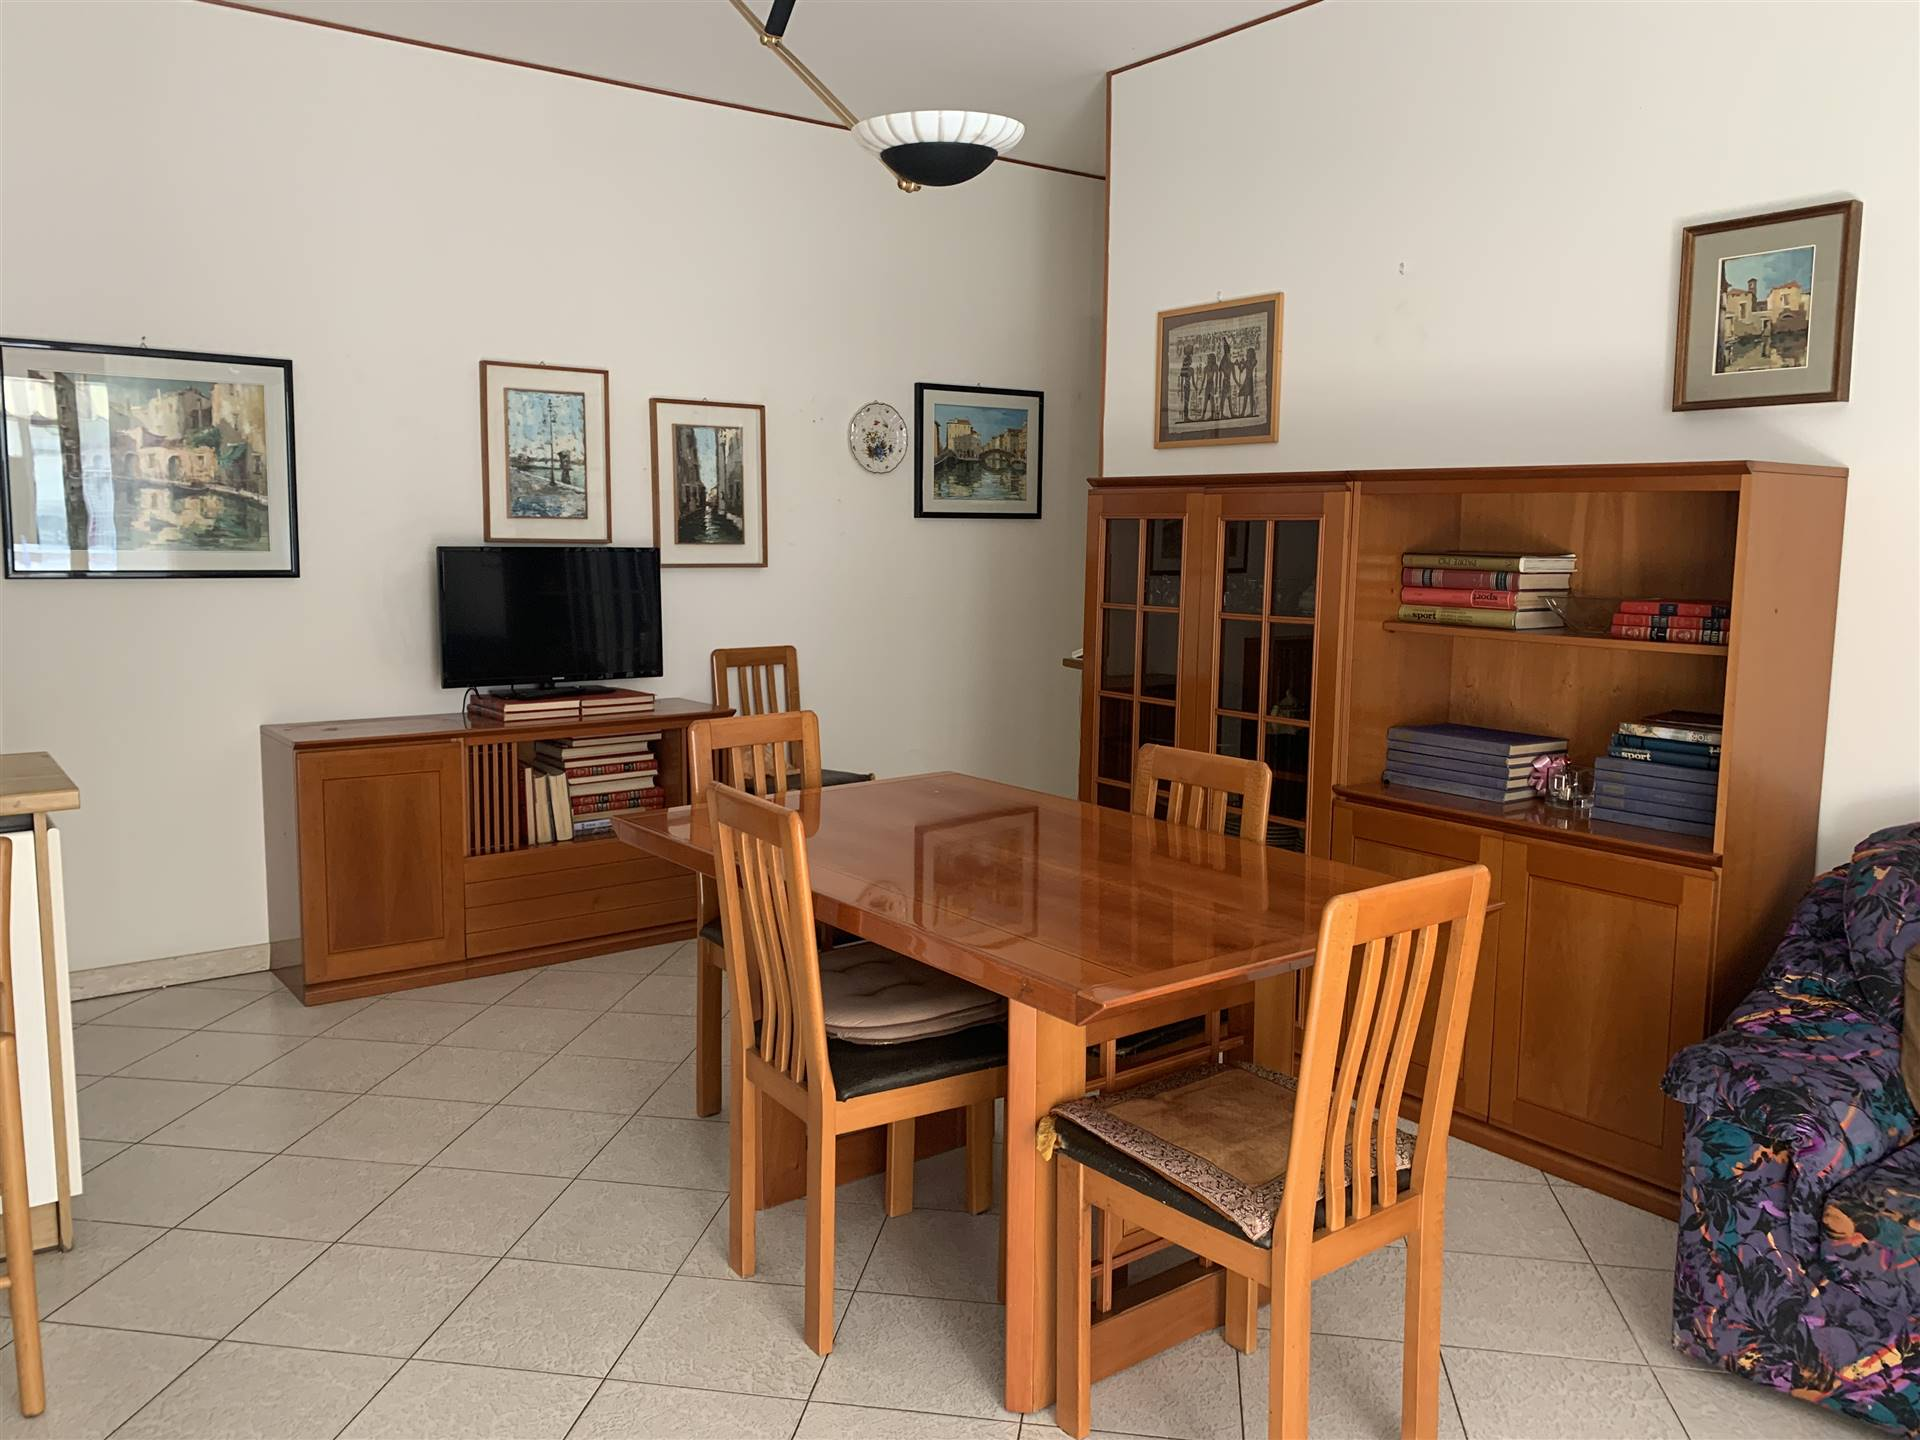 SOTTOMARINA, CHIOGGIA, Apartment for sale of 60 Sq. mt., Habitable, Heating Individual heating system, Energetic class: G, placed at 2°, composed by: